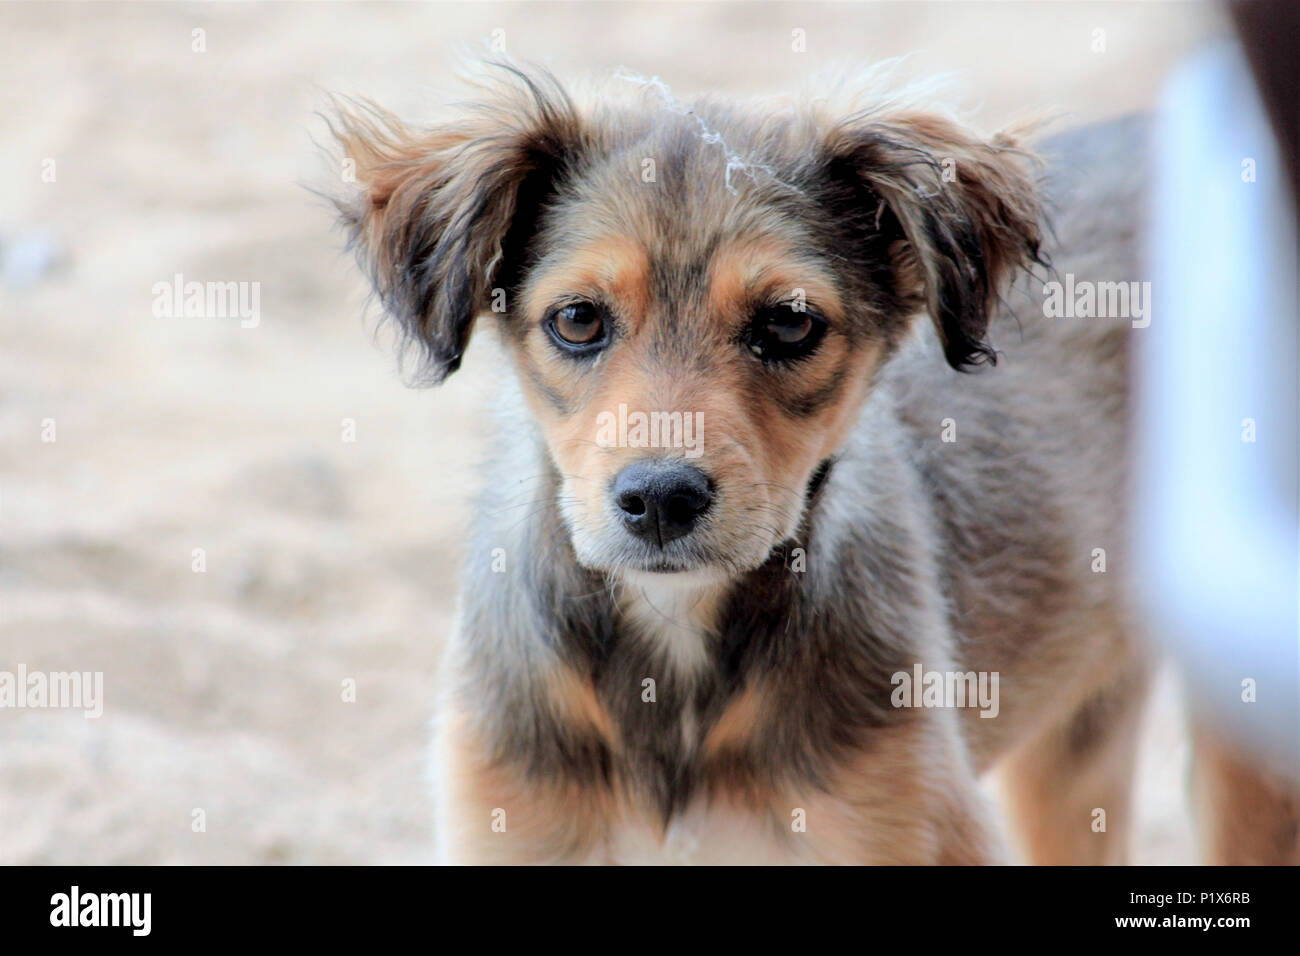 image of a abandoned brown stray dog on the beach - Stock Image